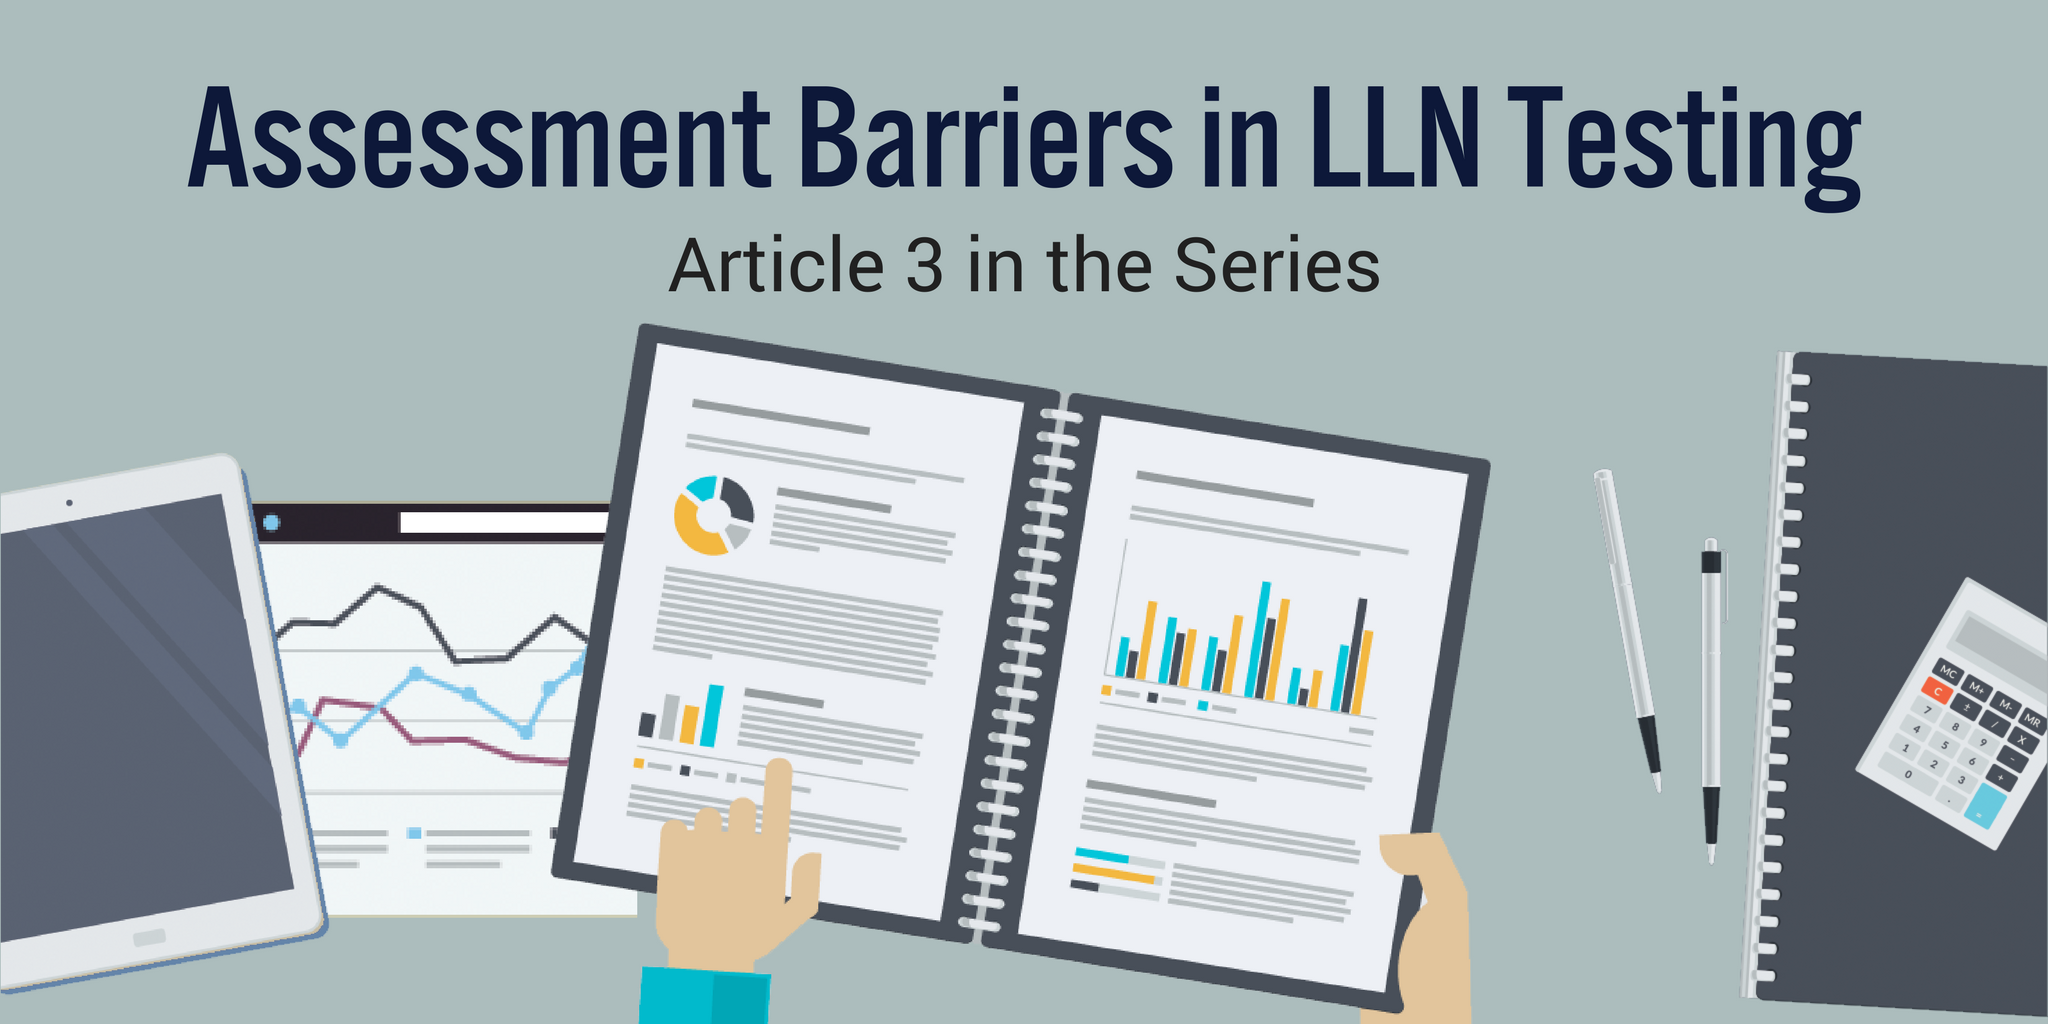 Assessment Barriers in LLN Testing